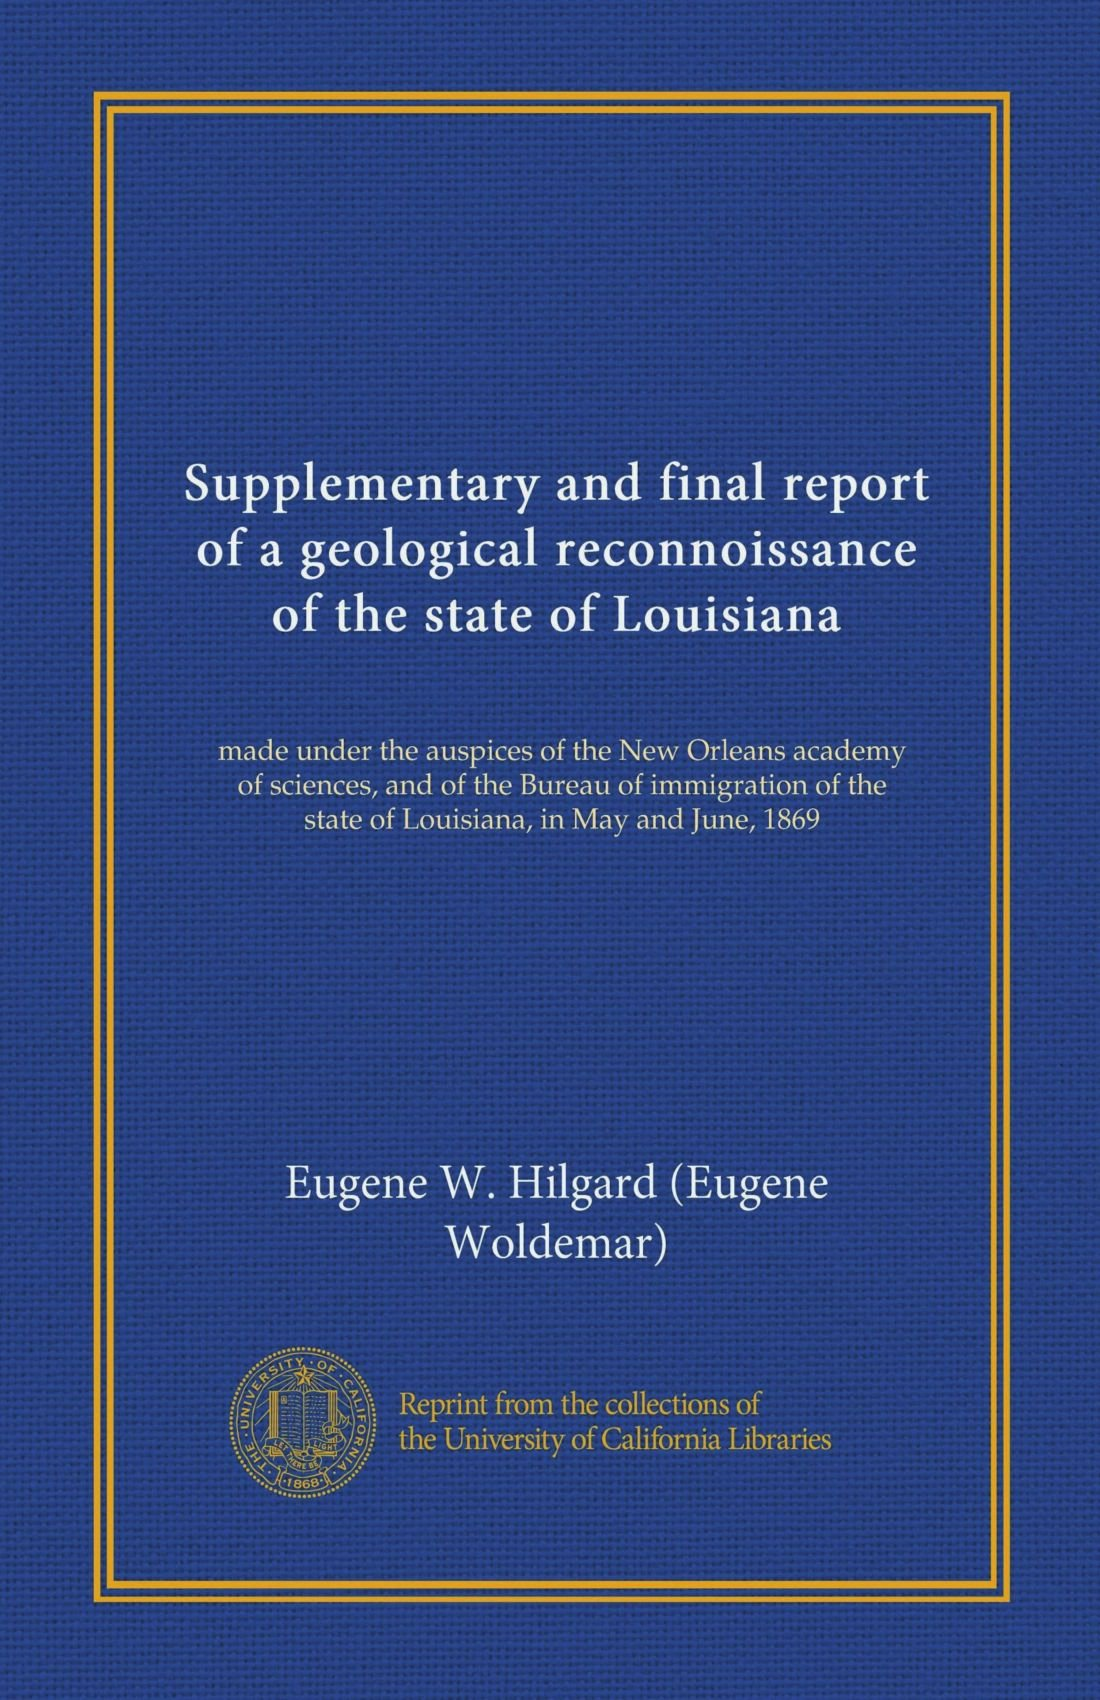 Supplementary and final report of a geological reconnoissance of the state of Louisiana (Vol-1): made under the auspices of the New Orleans academy of ... the state of Louisiana, in May and June, 1869 PDF